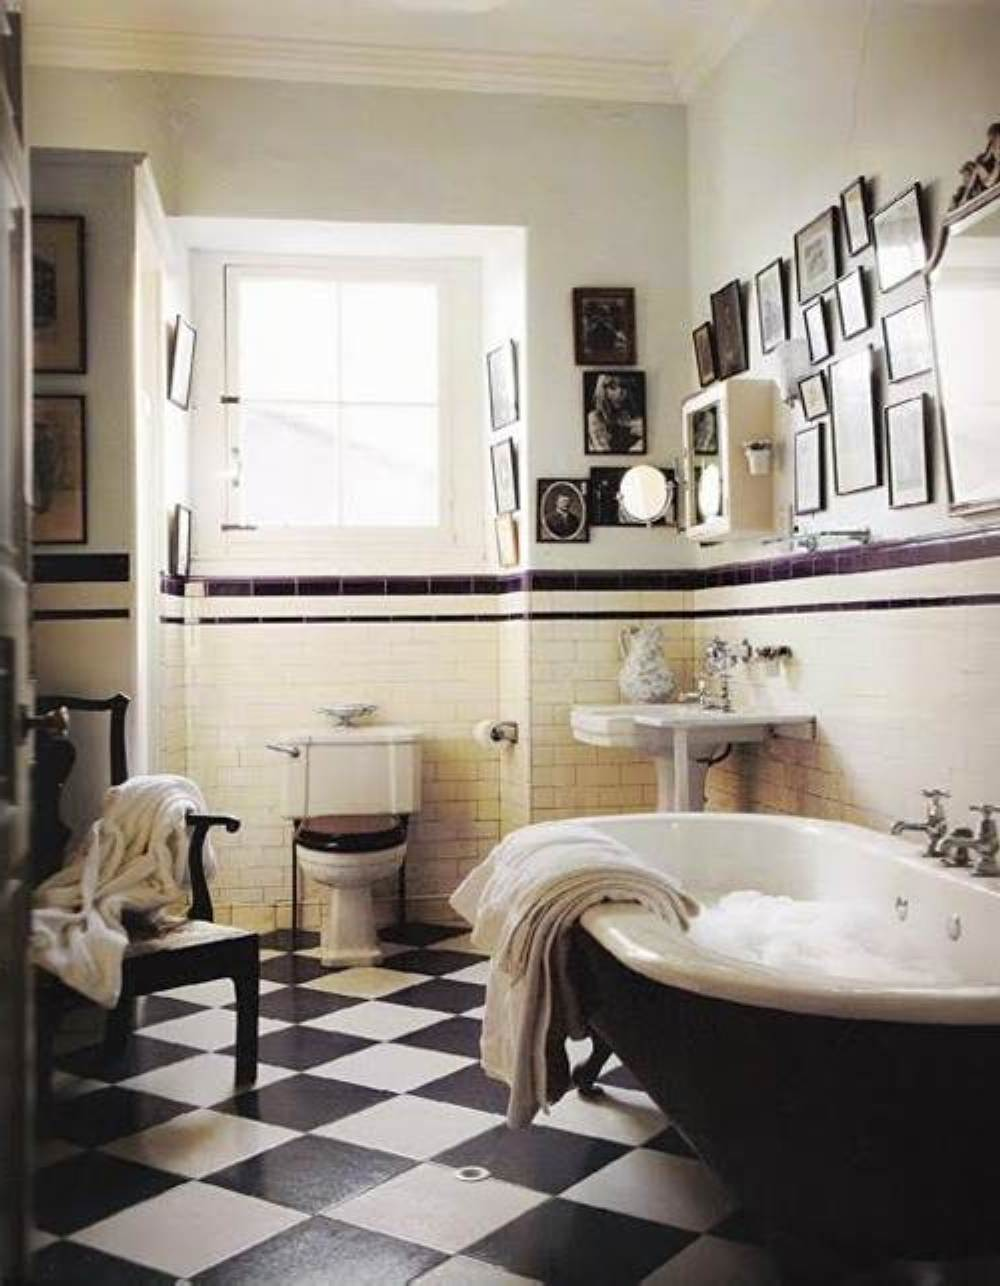 30 great pictures and ideas art nouveau bathroom tiles for Small art deco bathroom ideas